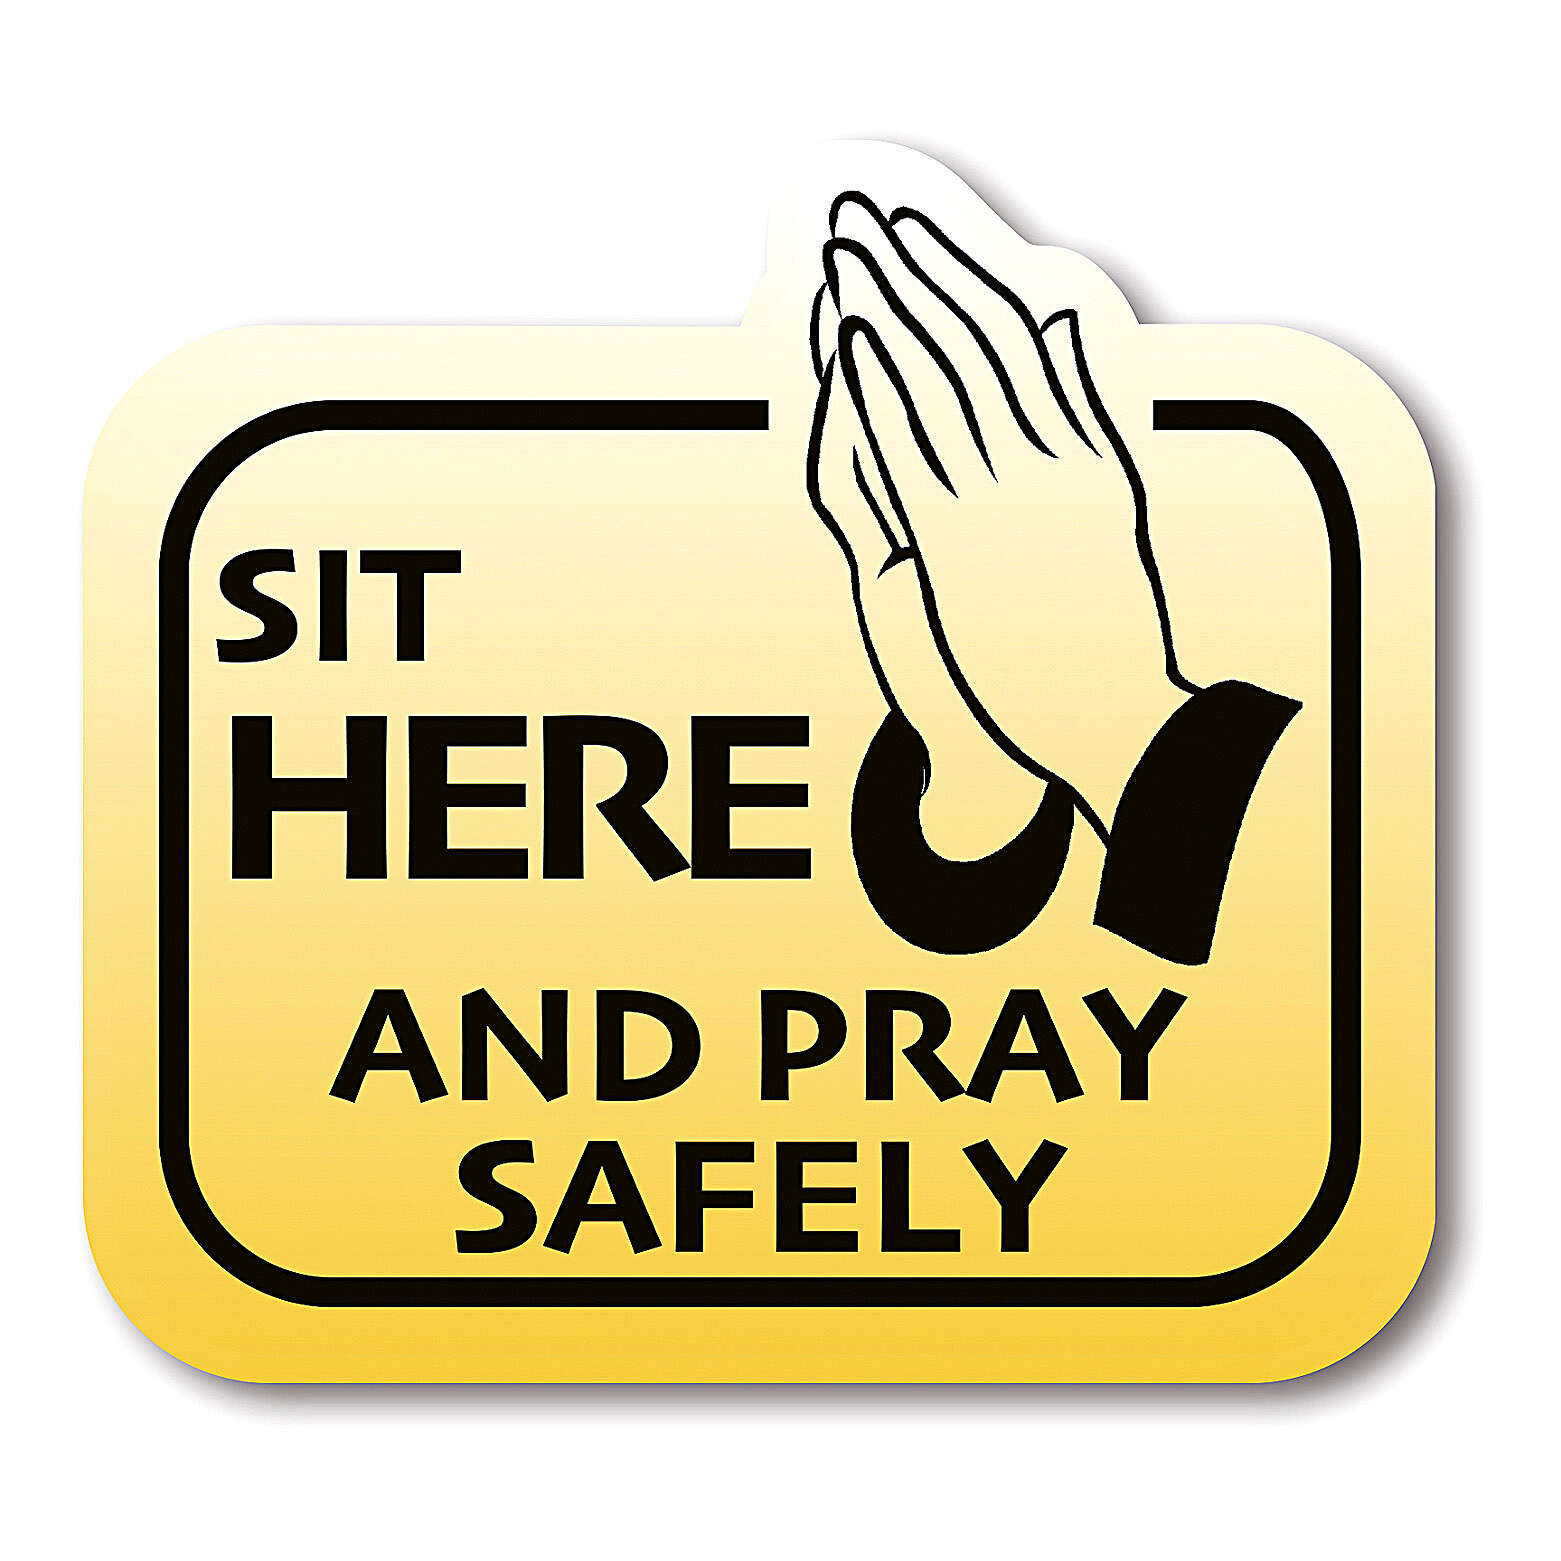 SIT HERE AND PRAY SAFELY removable stickers 8 pieces 3